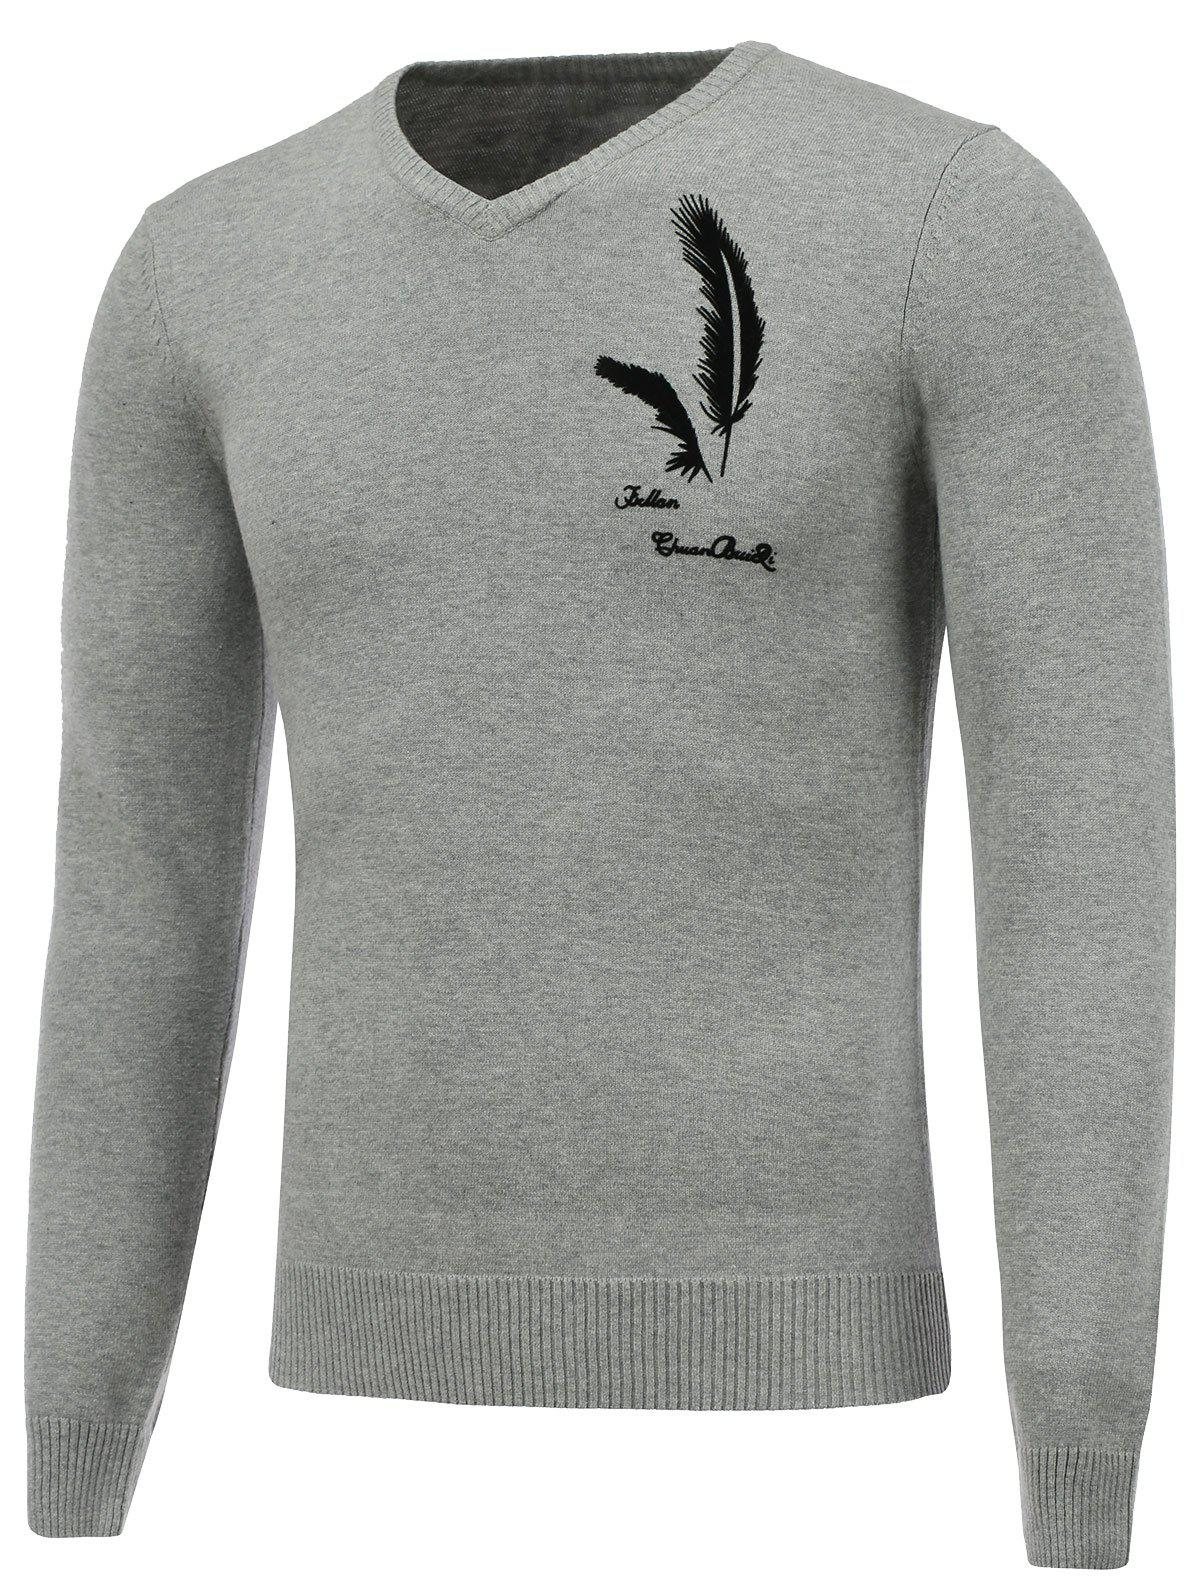 V Neck Long Sleeve Feather Graphic Sweater - GRAY M